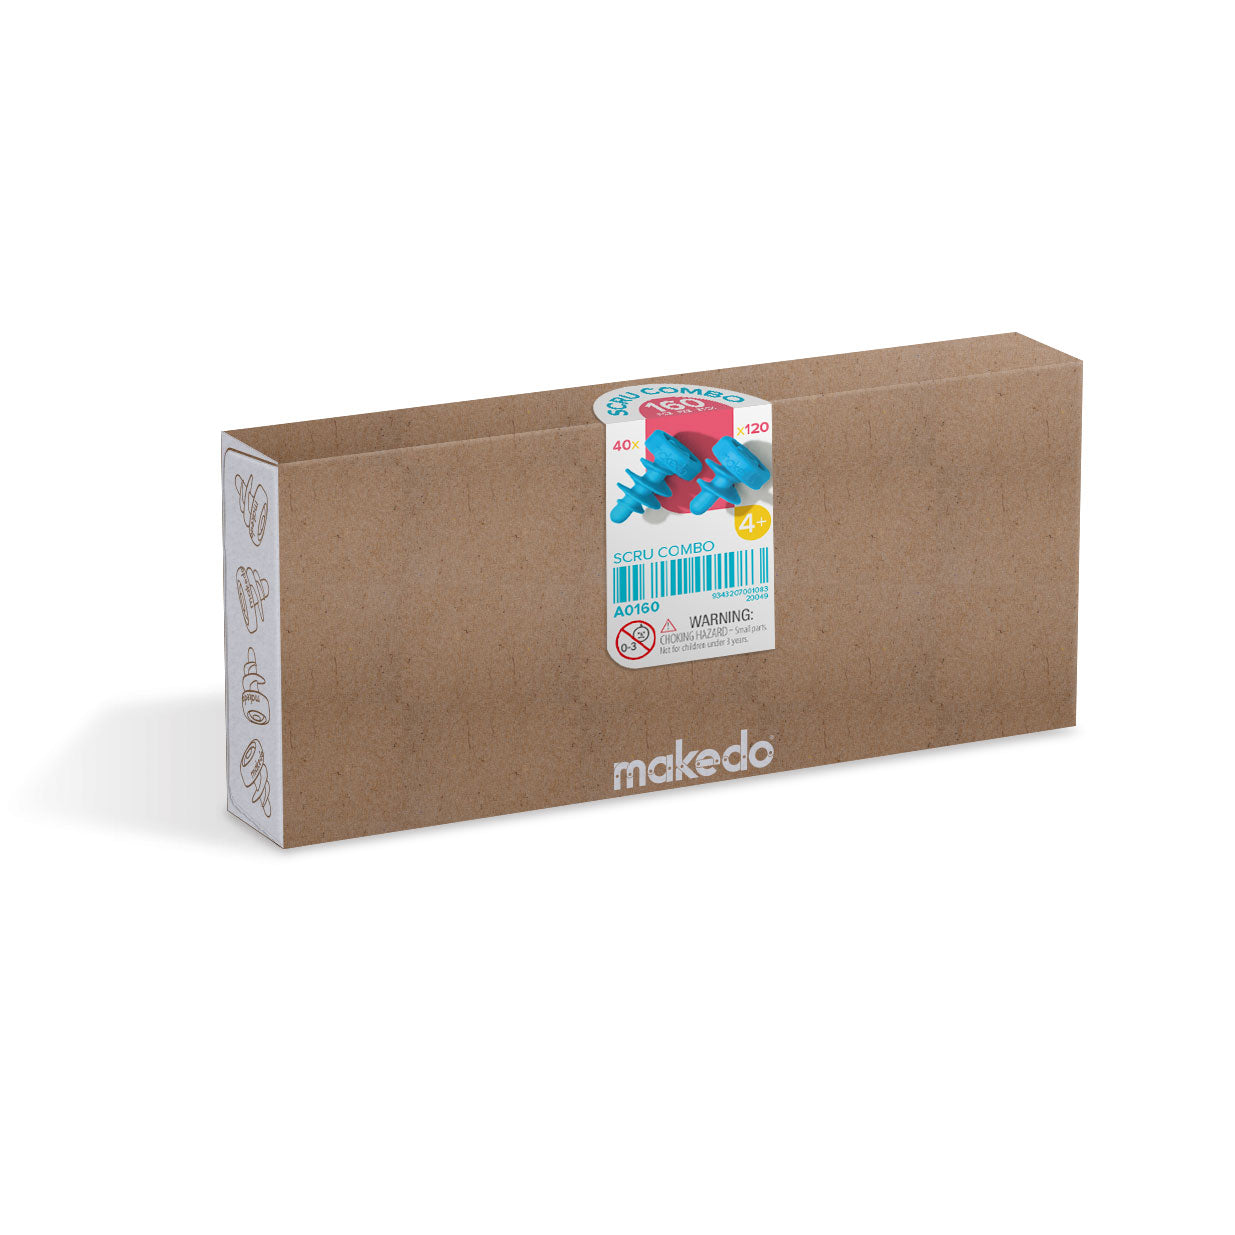 Makedo cardboard construction system - SCRU COMBO 160 piece kit.